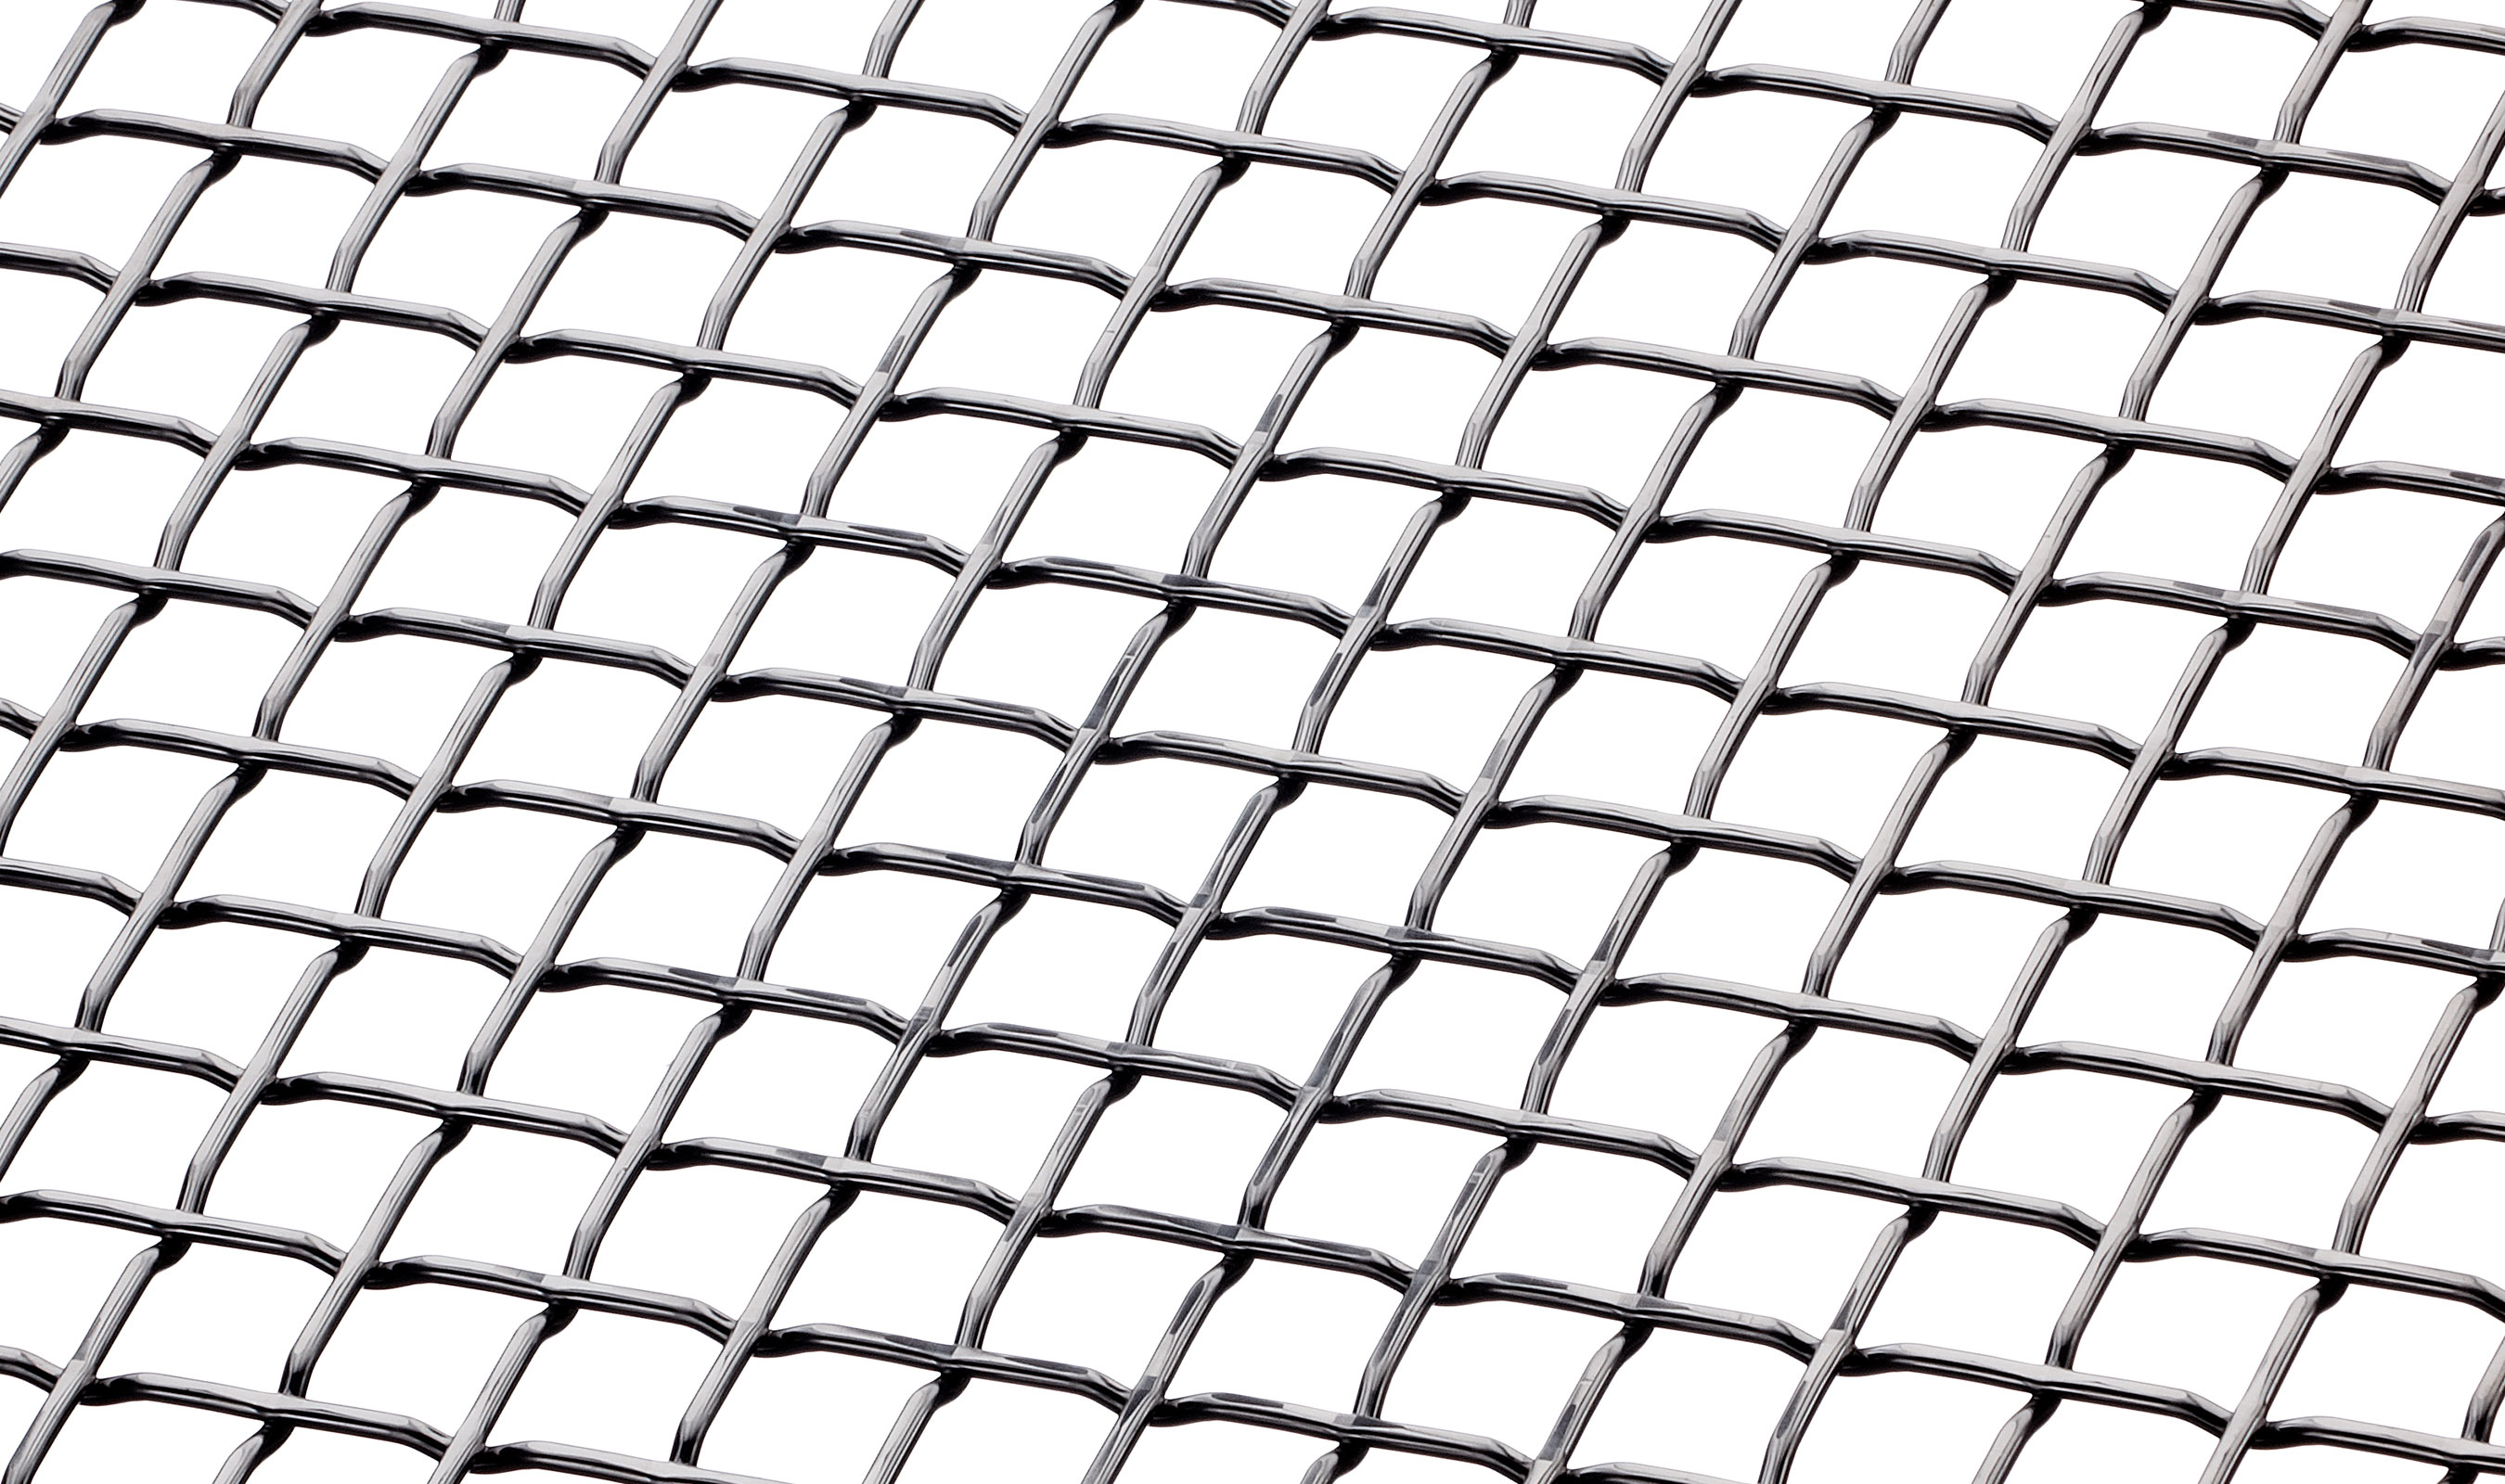 F-83 Angle in Stainless Woven Wire Mesh